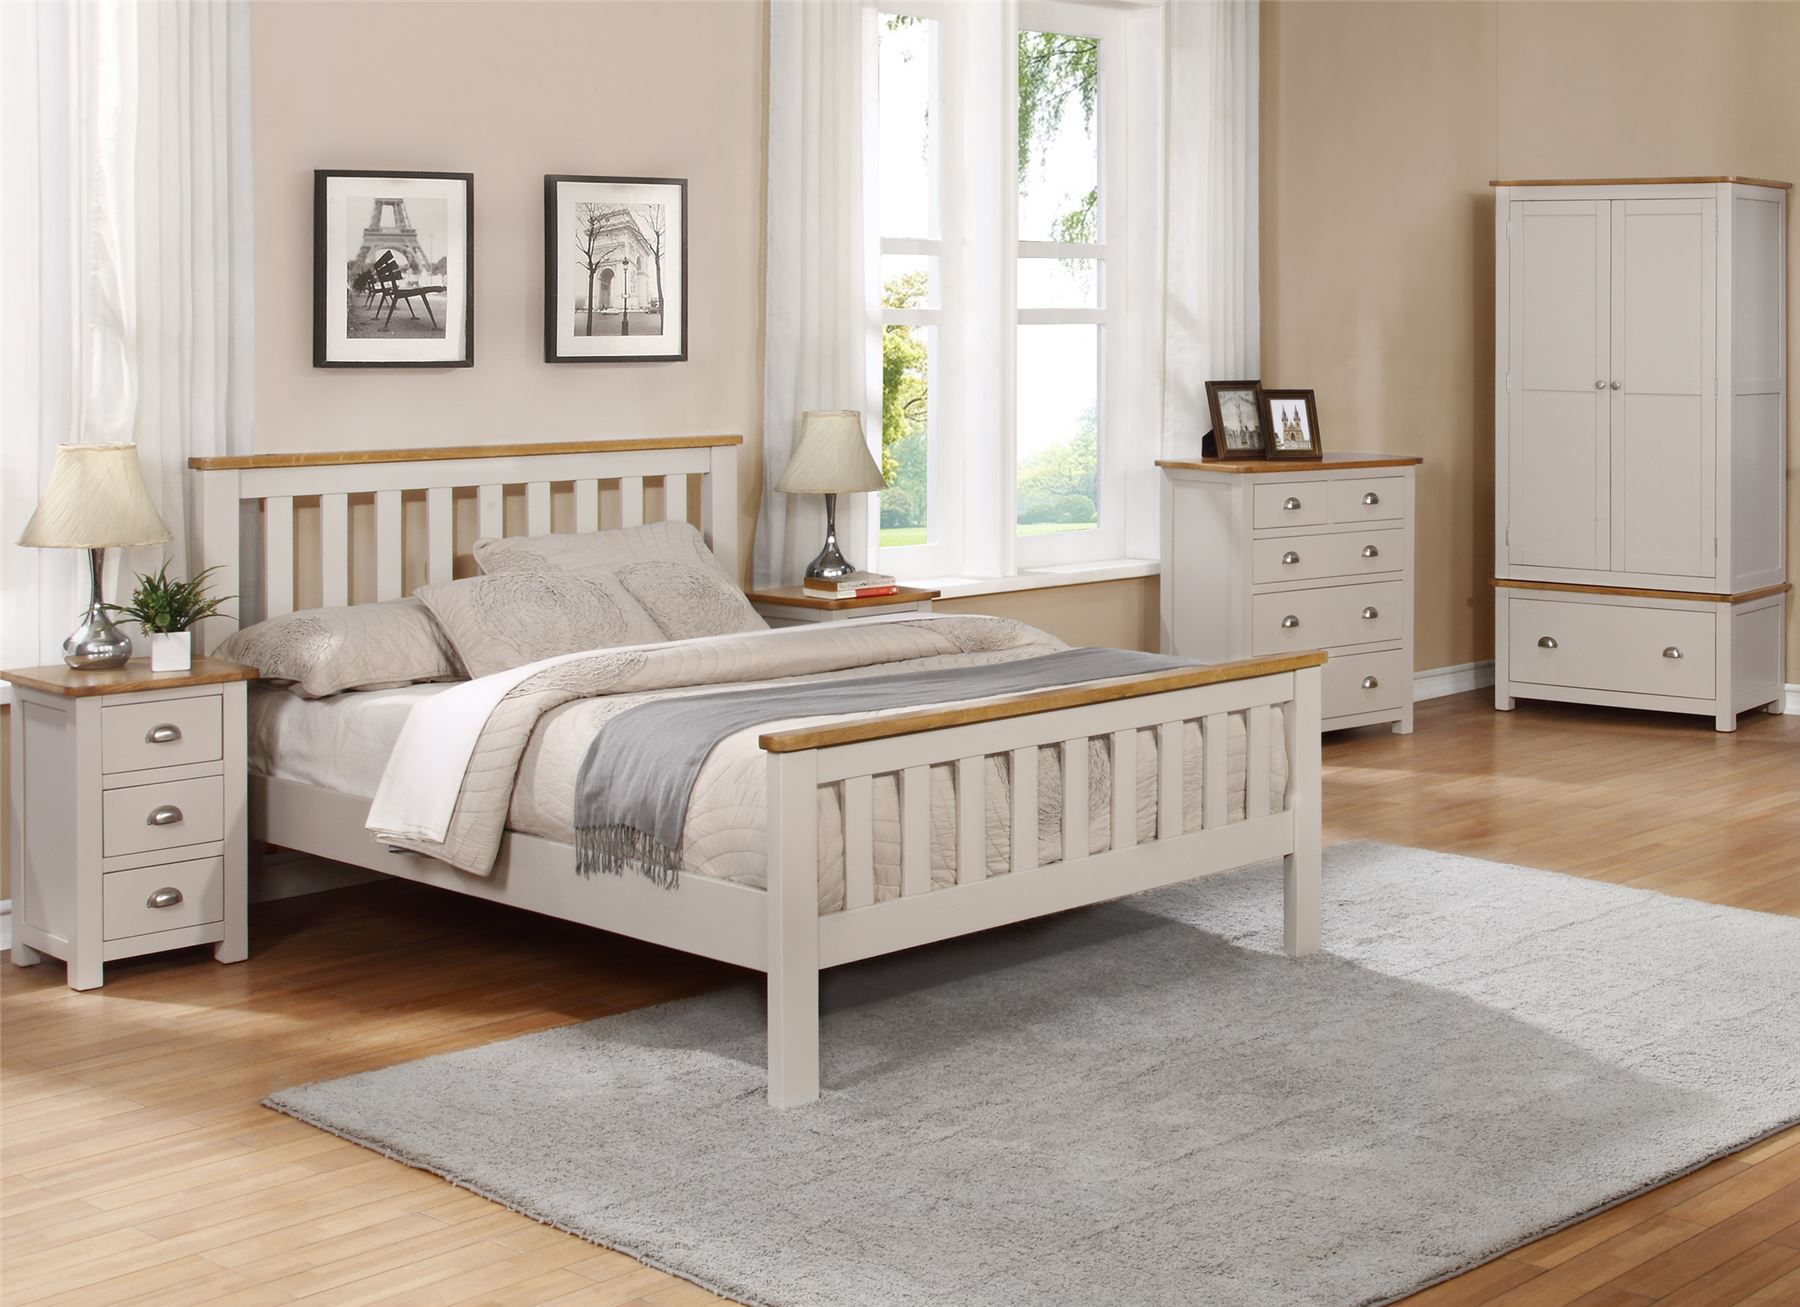 Sweet Dreams Cooper Classic Double 135cm 4FT6 Oak & Grey Solid Wood Bed Frame